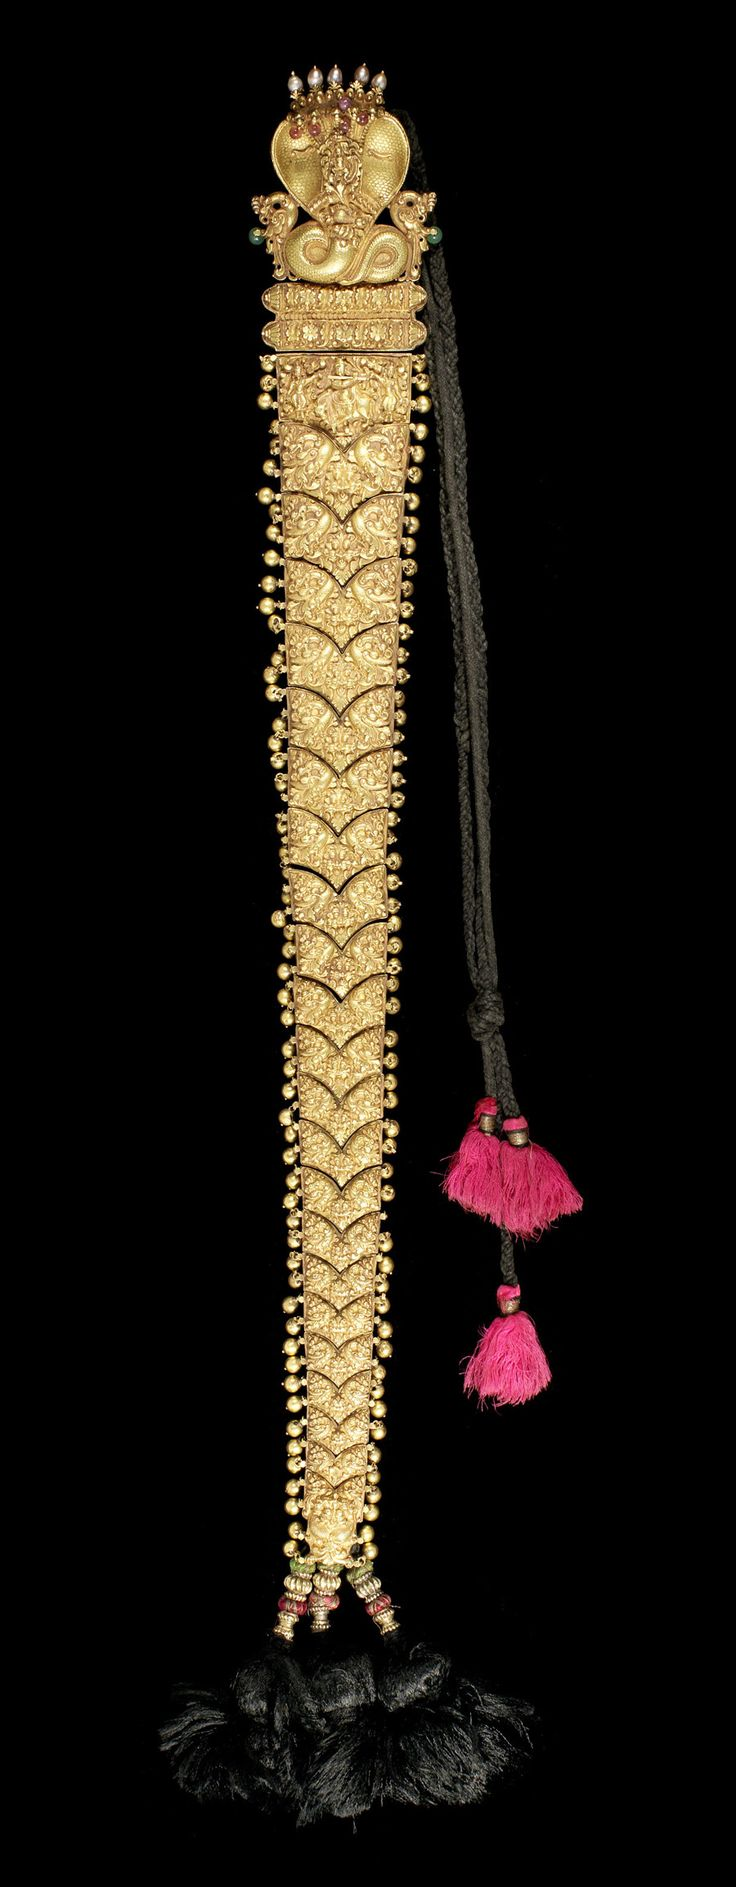 Gold braid, part of the Bonhams Indian Temple Jewellery.